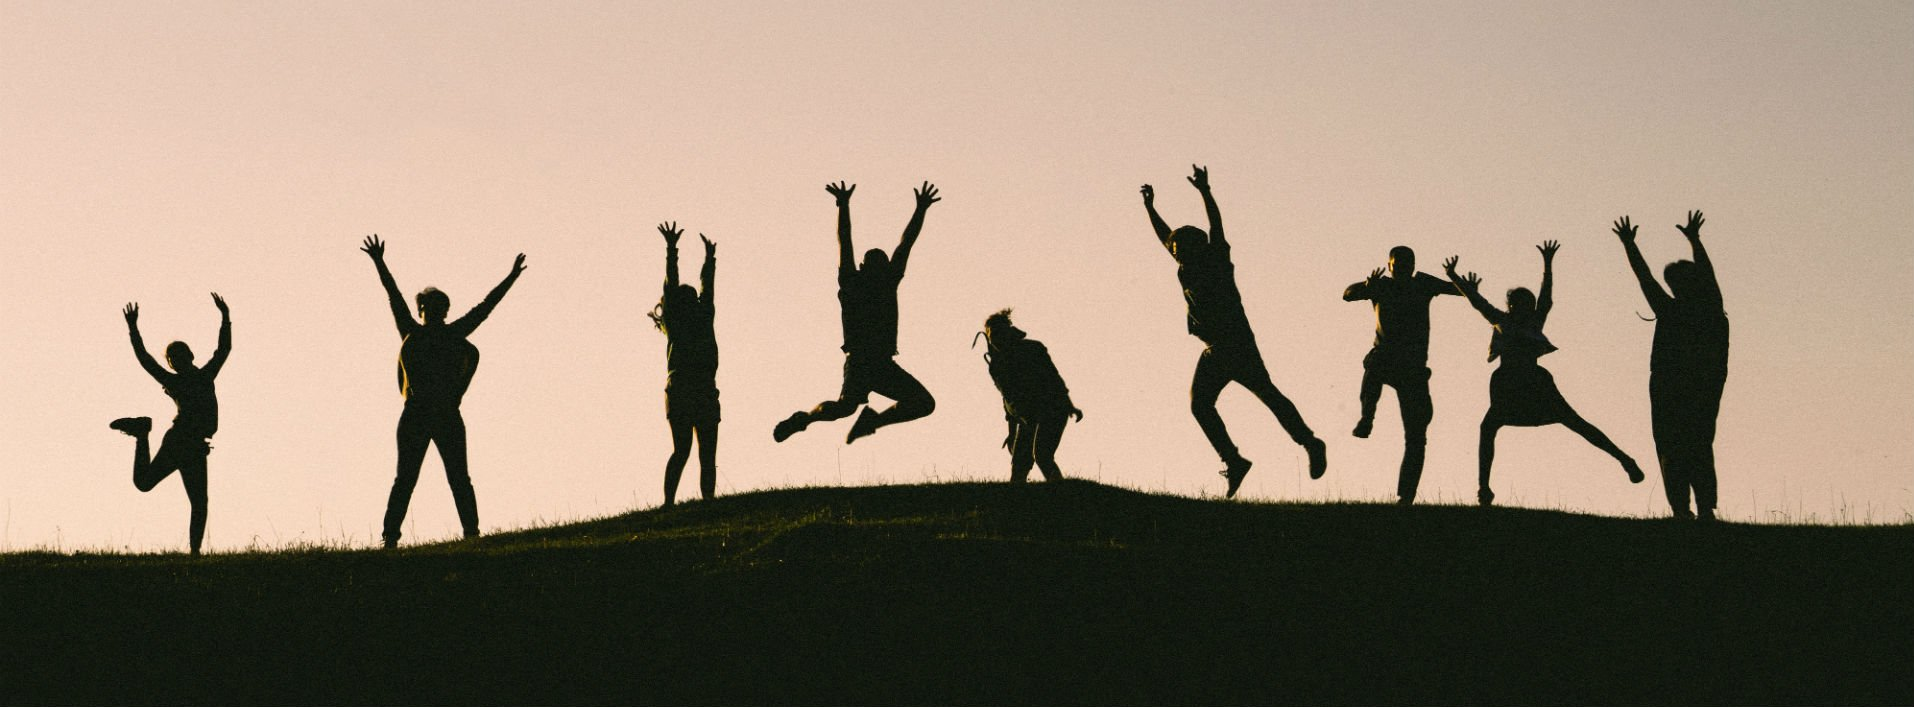 Were, where: We're here to help: People jumping up on a mountain in a shadow form.